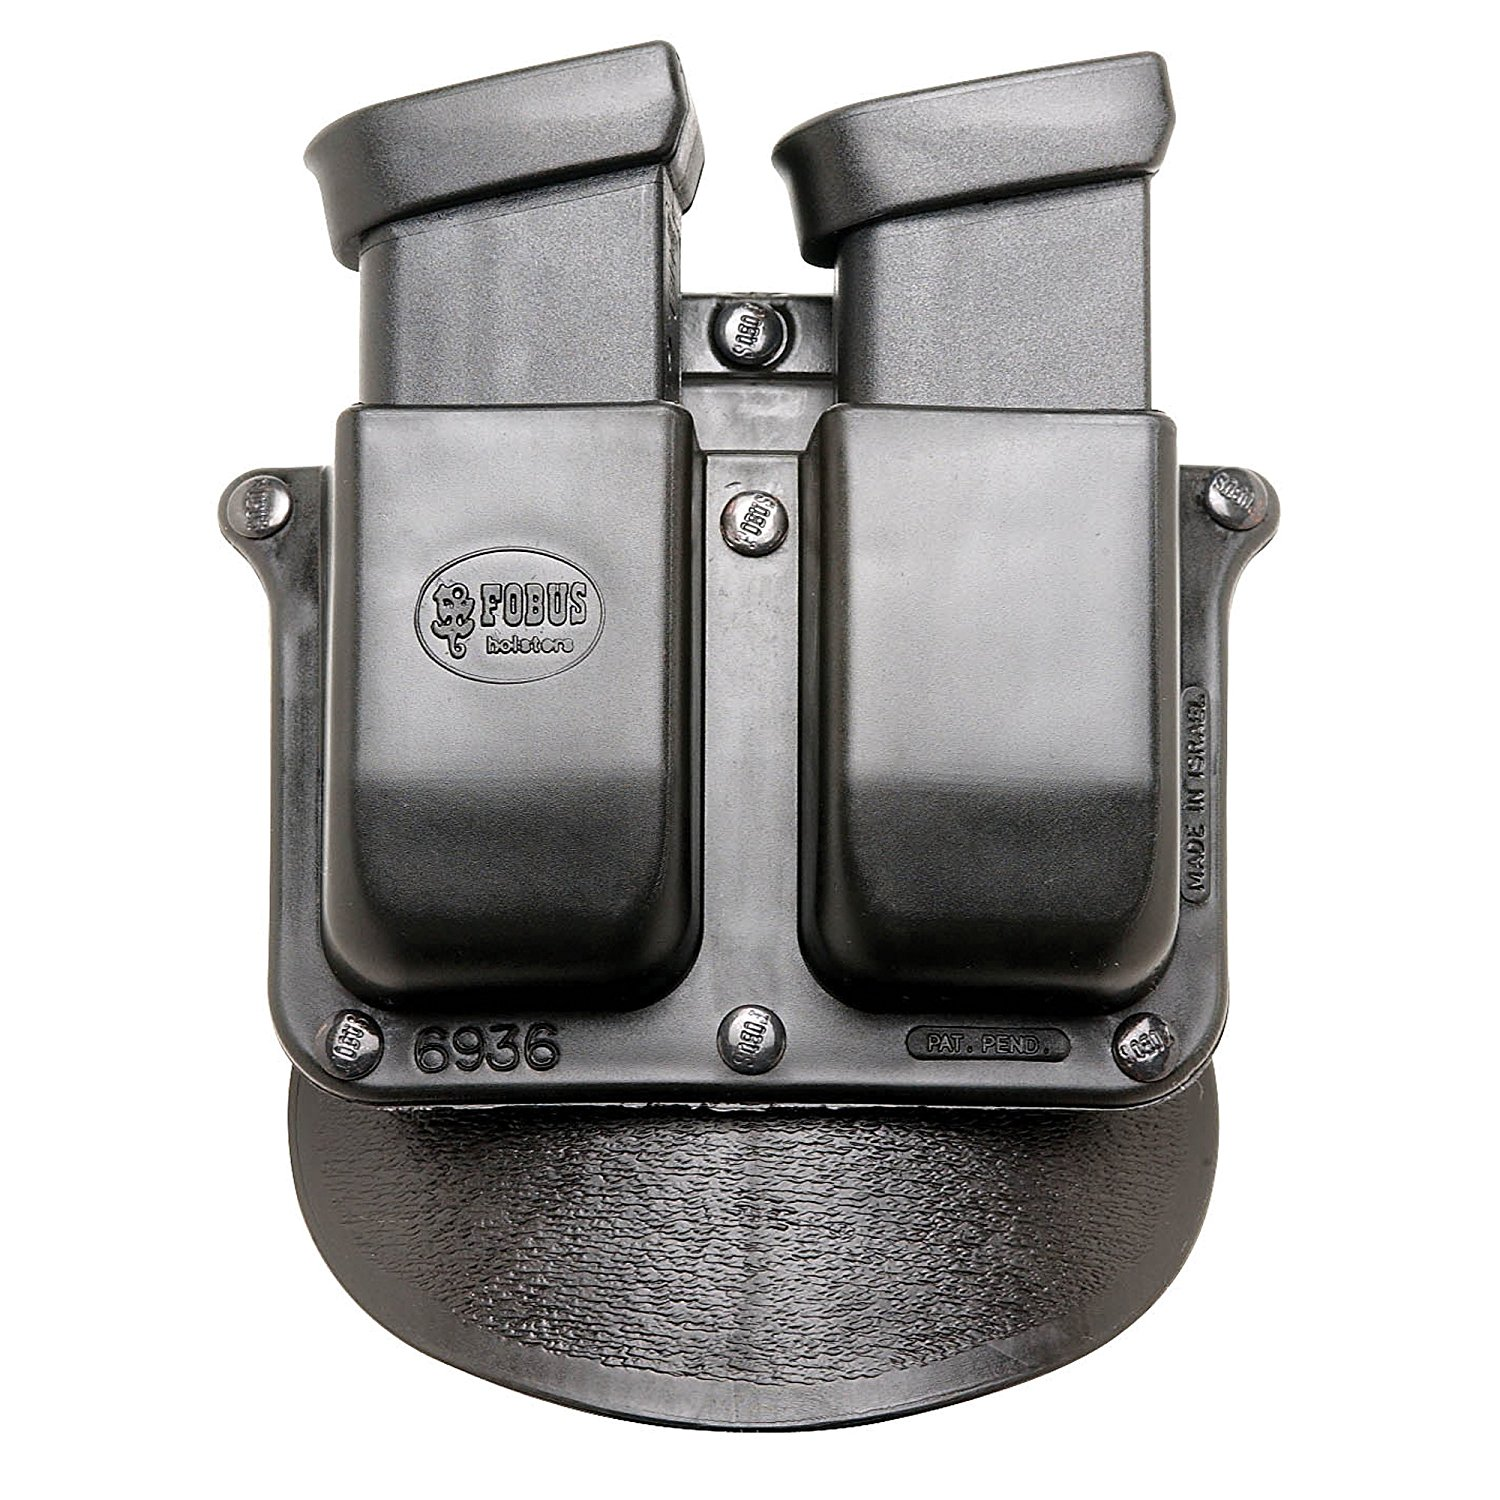 Paddle FO6936P Double Mag Pouch, fits S;W M;P .45 cal, Gl...